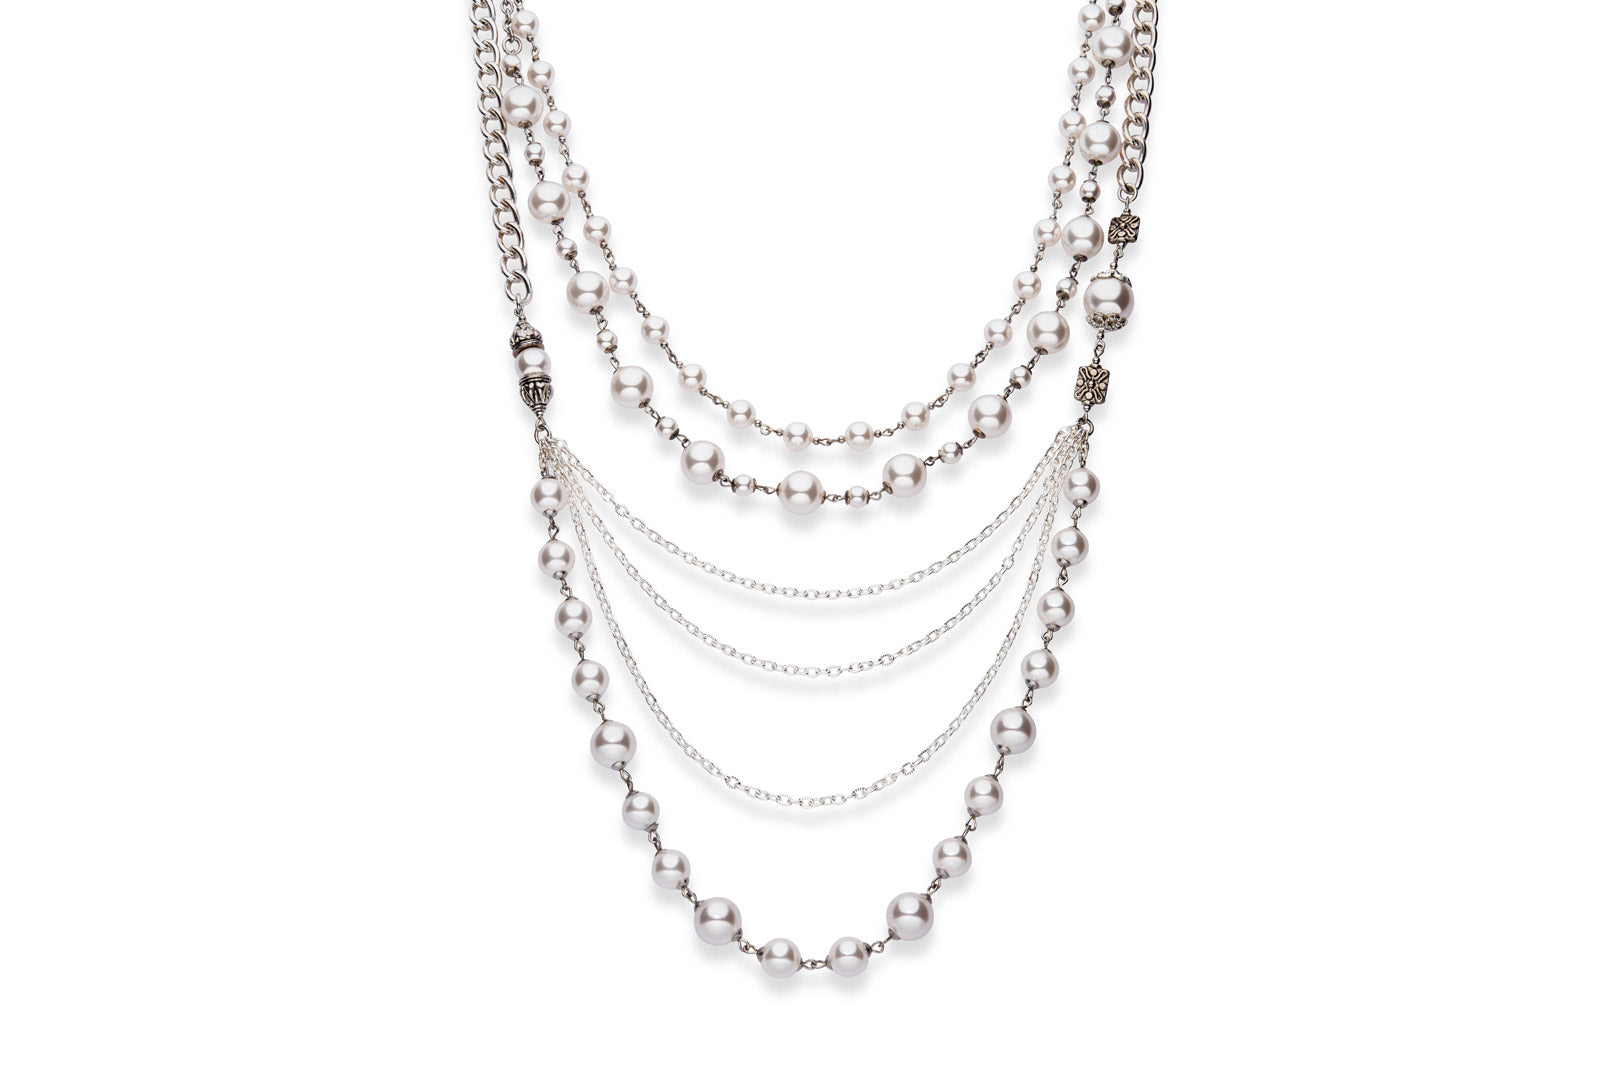 statement necklace made from Swarovski crystal pearls, sterling silver chains, silver plated chains